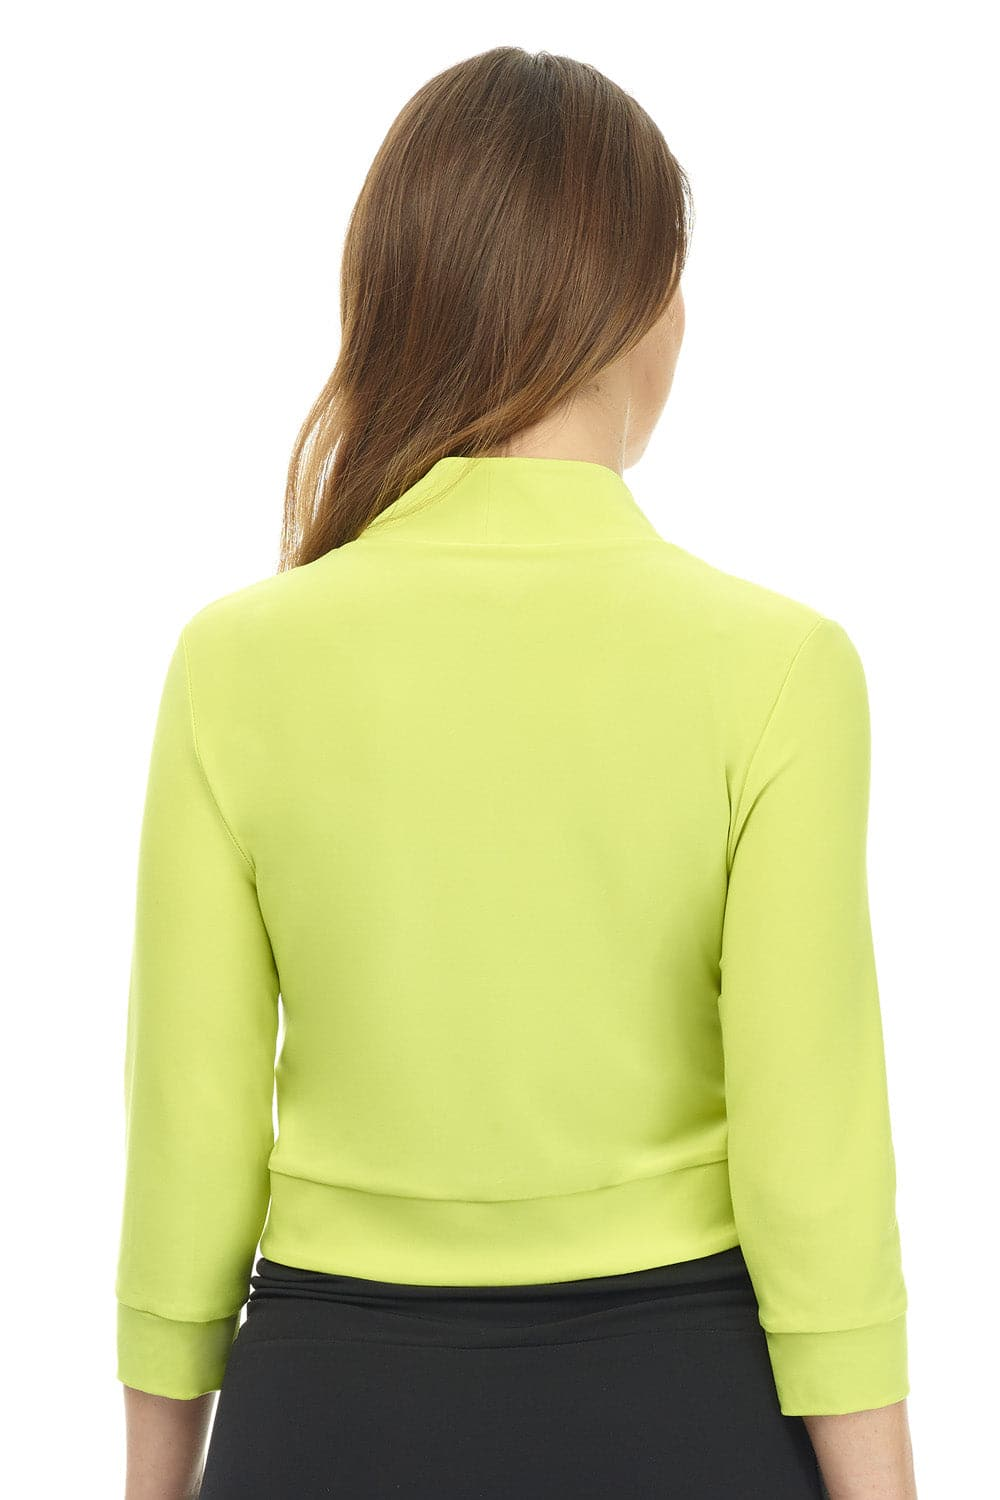 Soft Knit Bolero Shrug with Rounded Hem